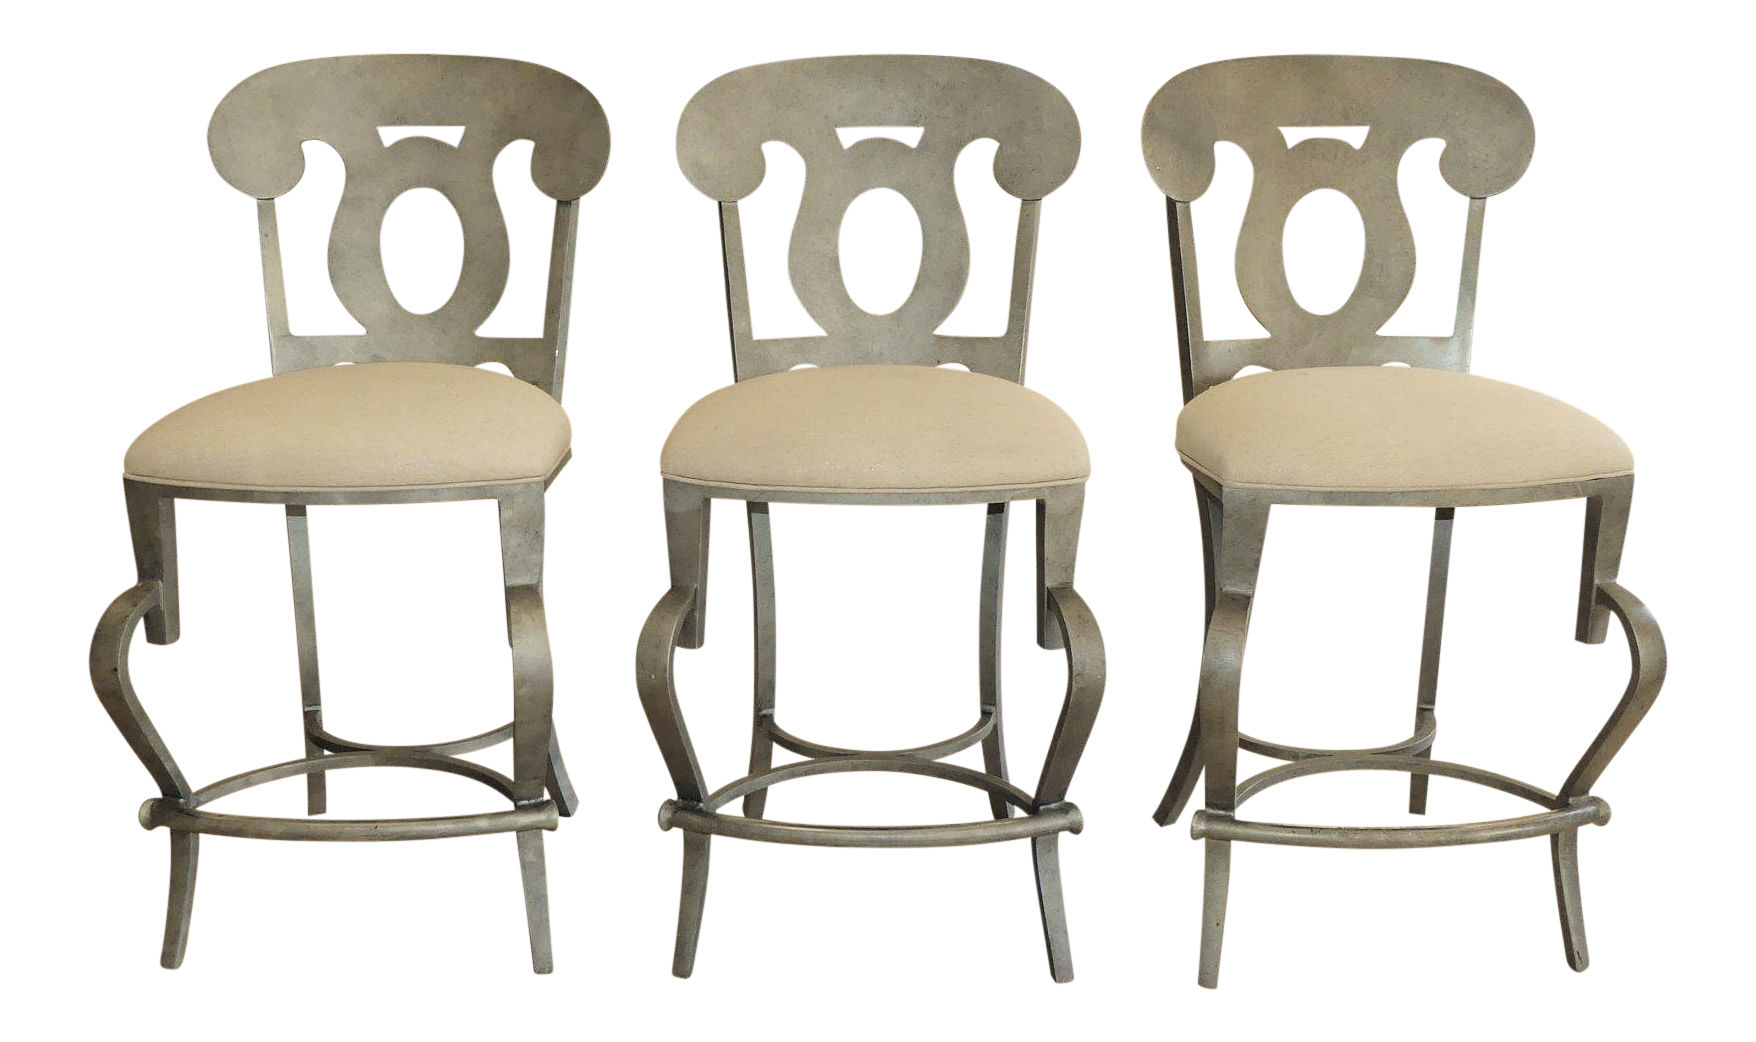 Sold Set of 3- Modern Biedermeier Style Metal Counter Height Bar Stools